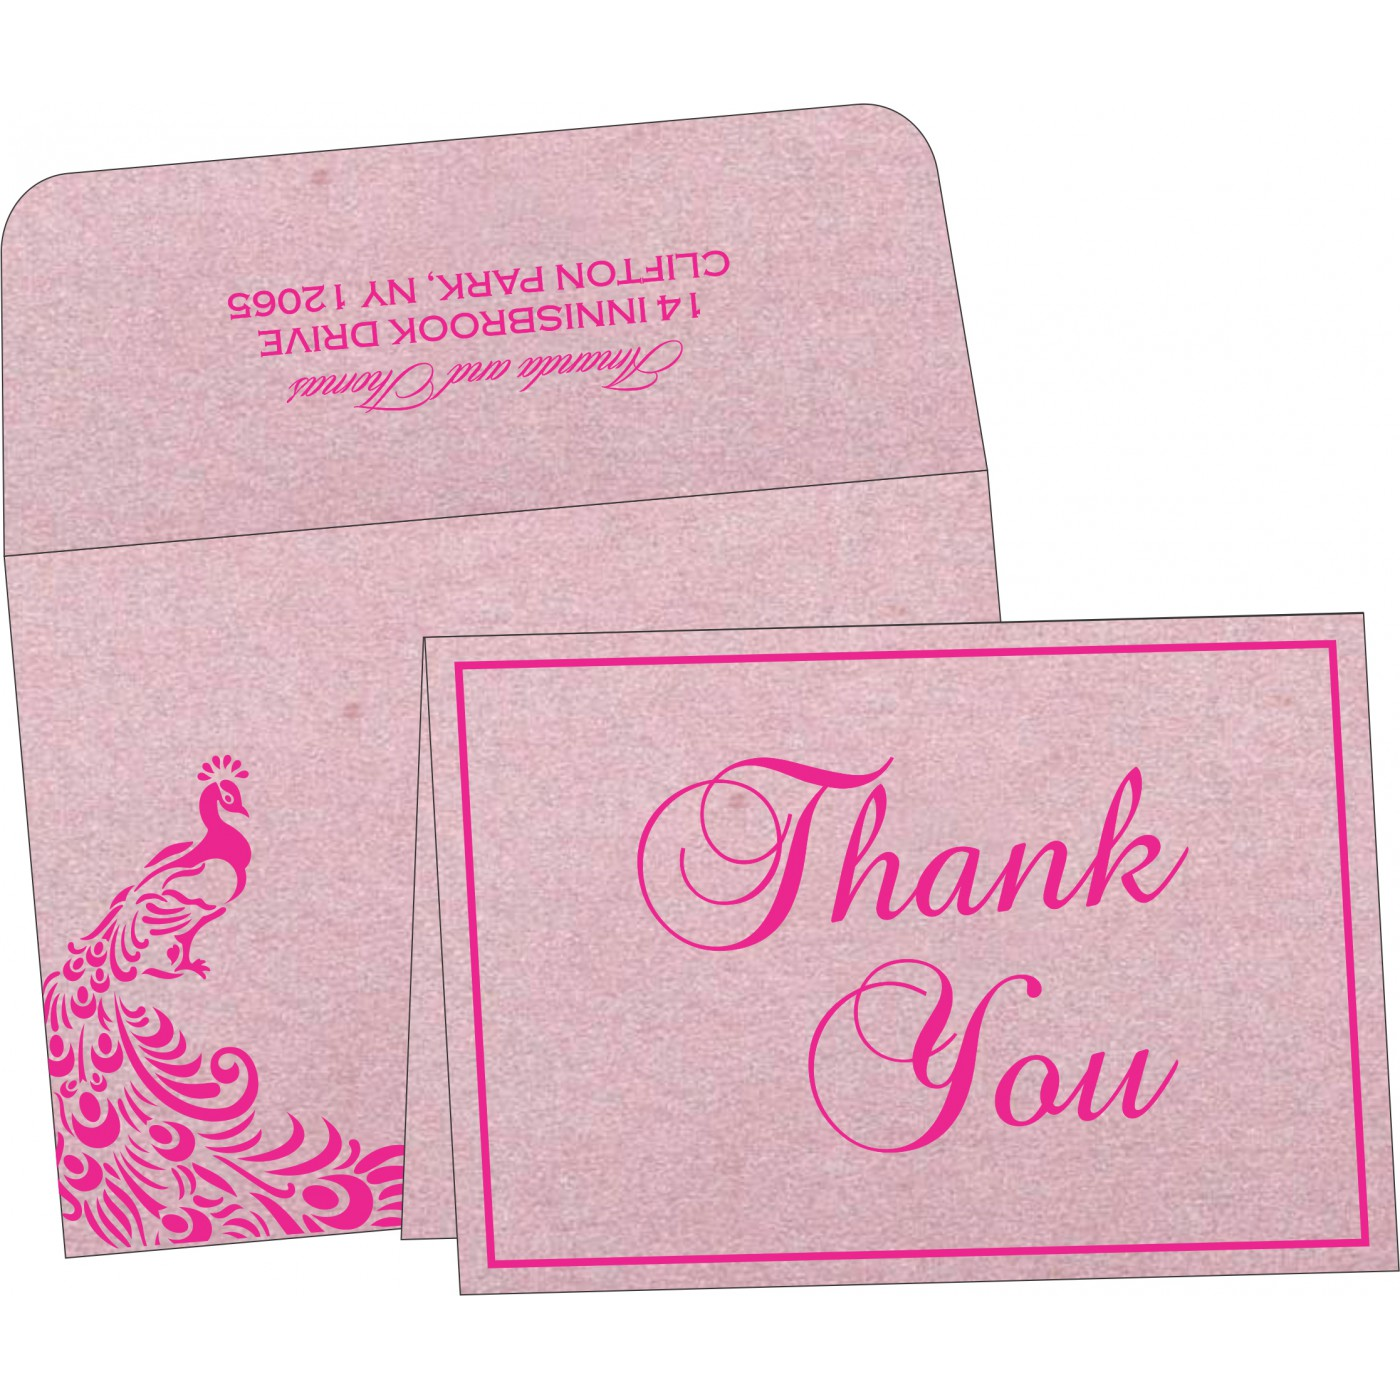 Thank You Cards - TYC-8255F